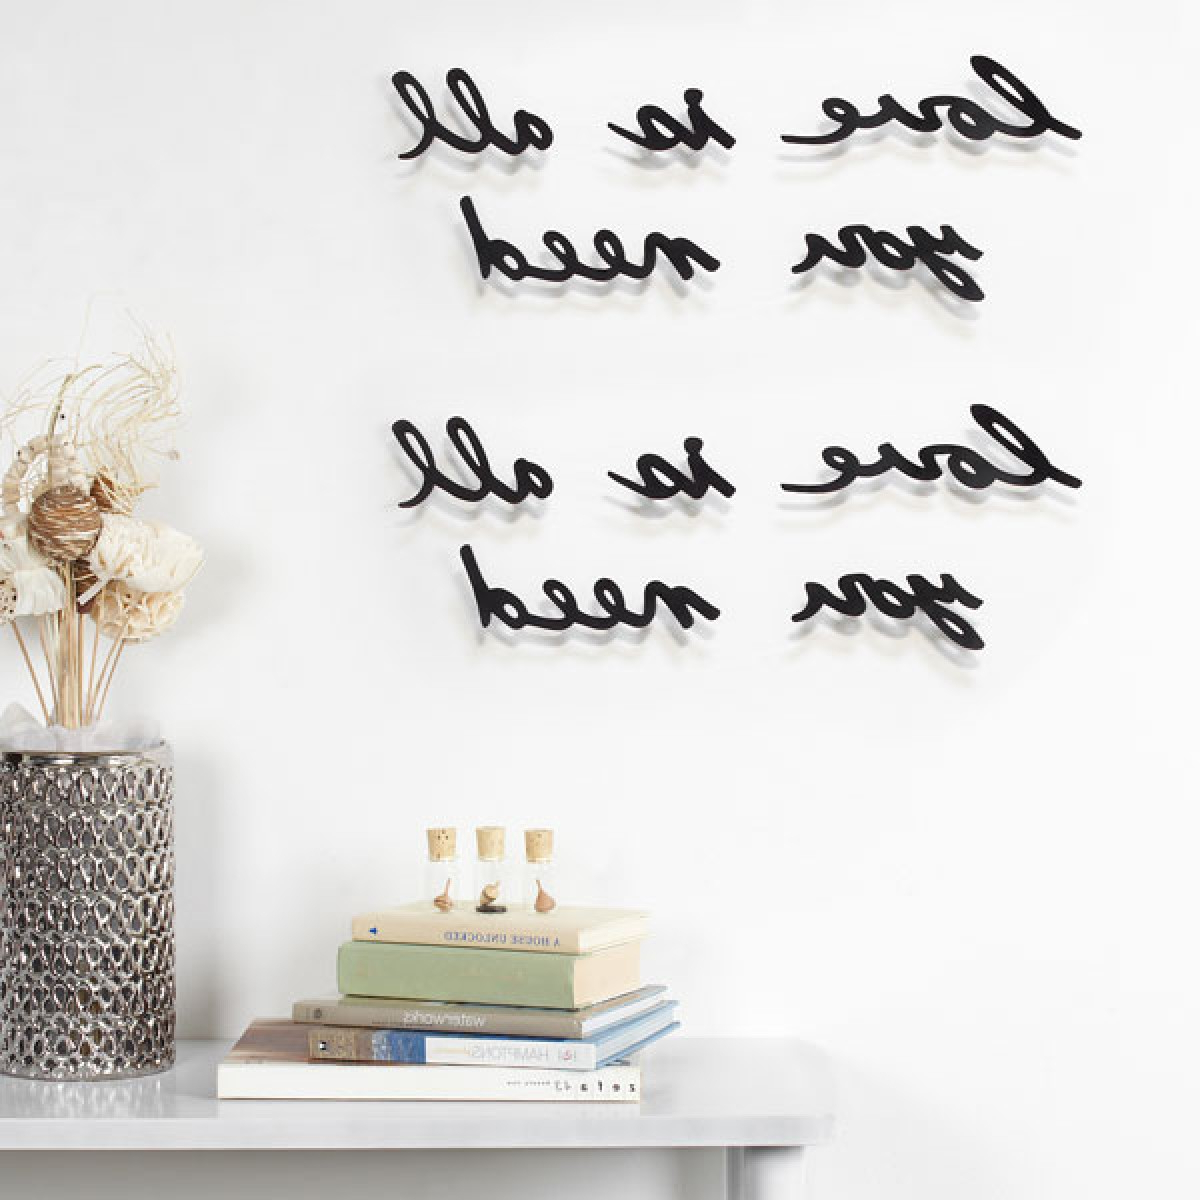 2020 Umbra Mantra Love Wall Decor Intended For Mantra Do What You Love Wall Décor (View 9 of 20)